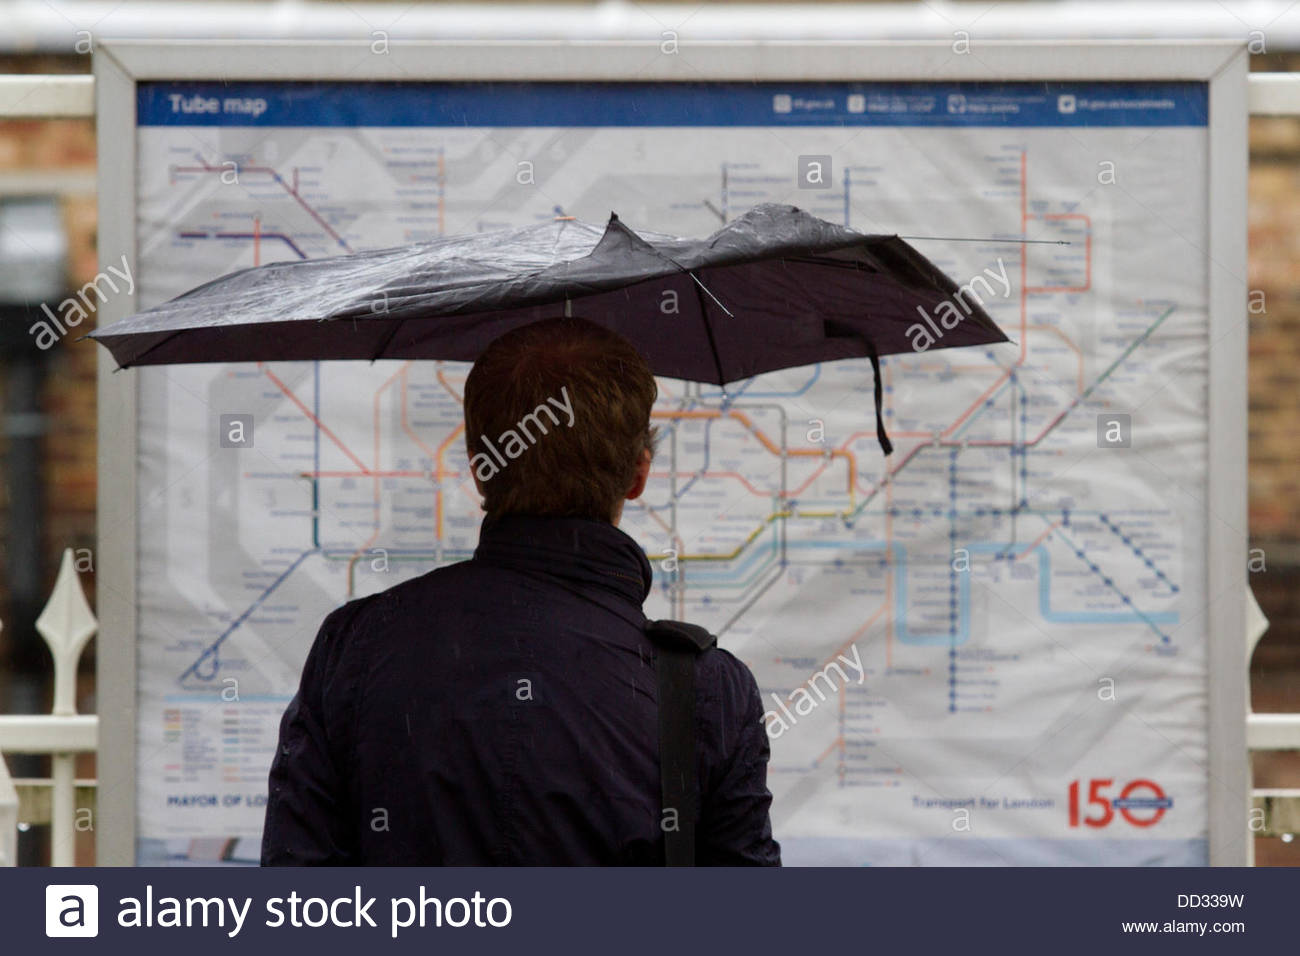 Putney bridge london uk 24th august 2013 a man with an umbrella putney bridge london uk 24th august 2013 a man with an umbrella looks at an underground map with rain predicted over the bank holiday weekend which may gumiabroncs